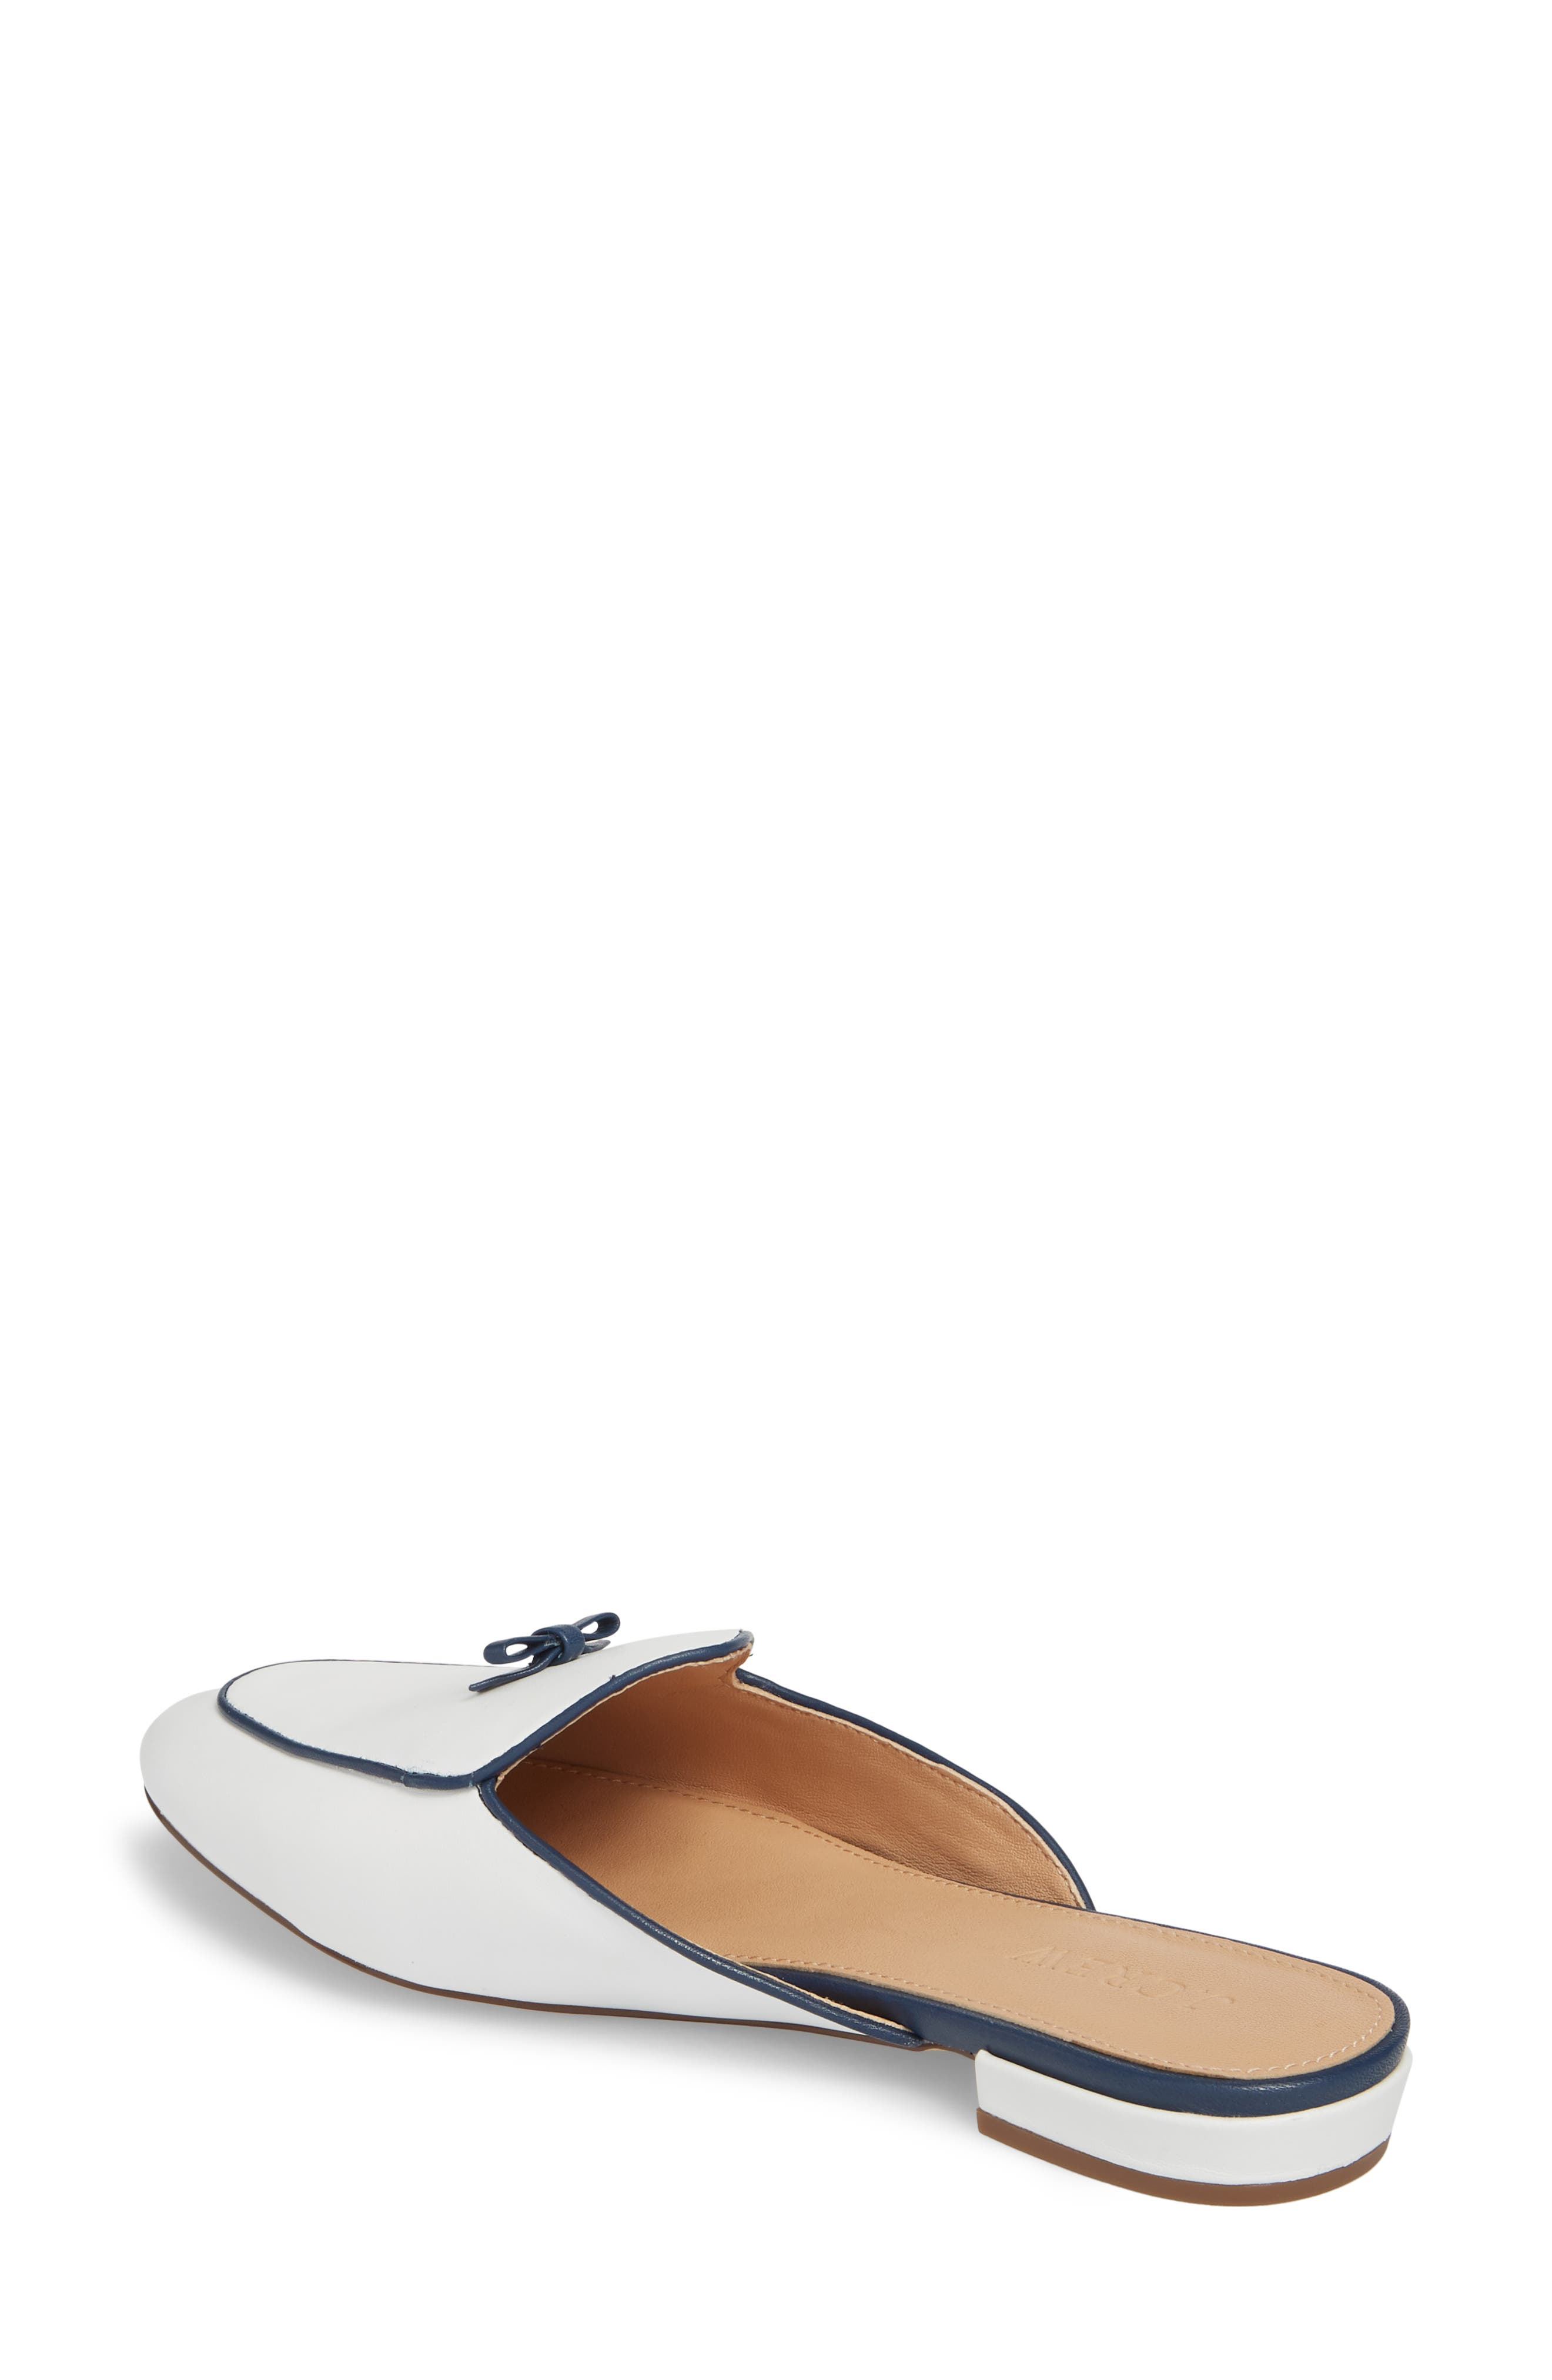 Loafer Mule,                             Alternate thumbnail 2, color,                             100